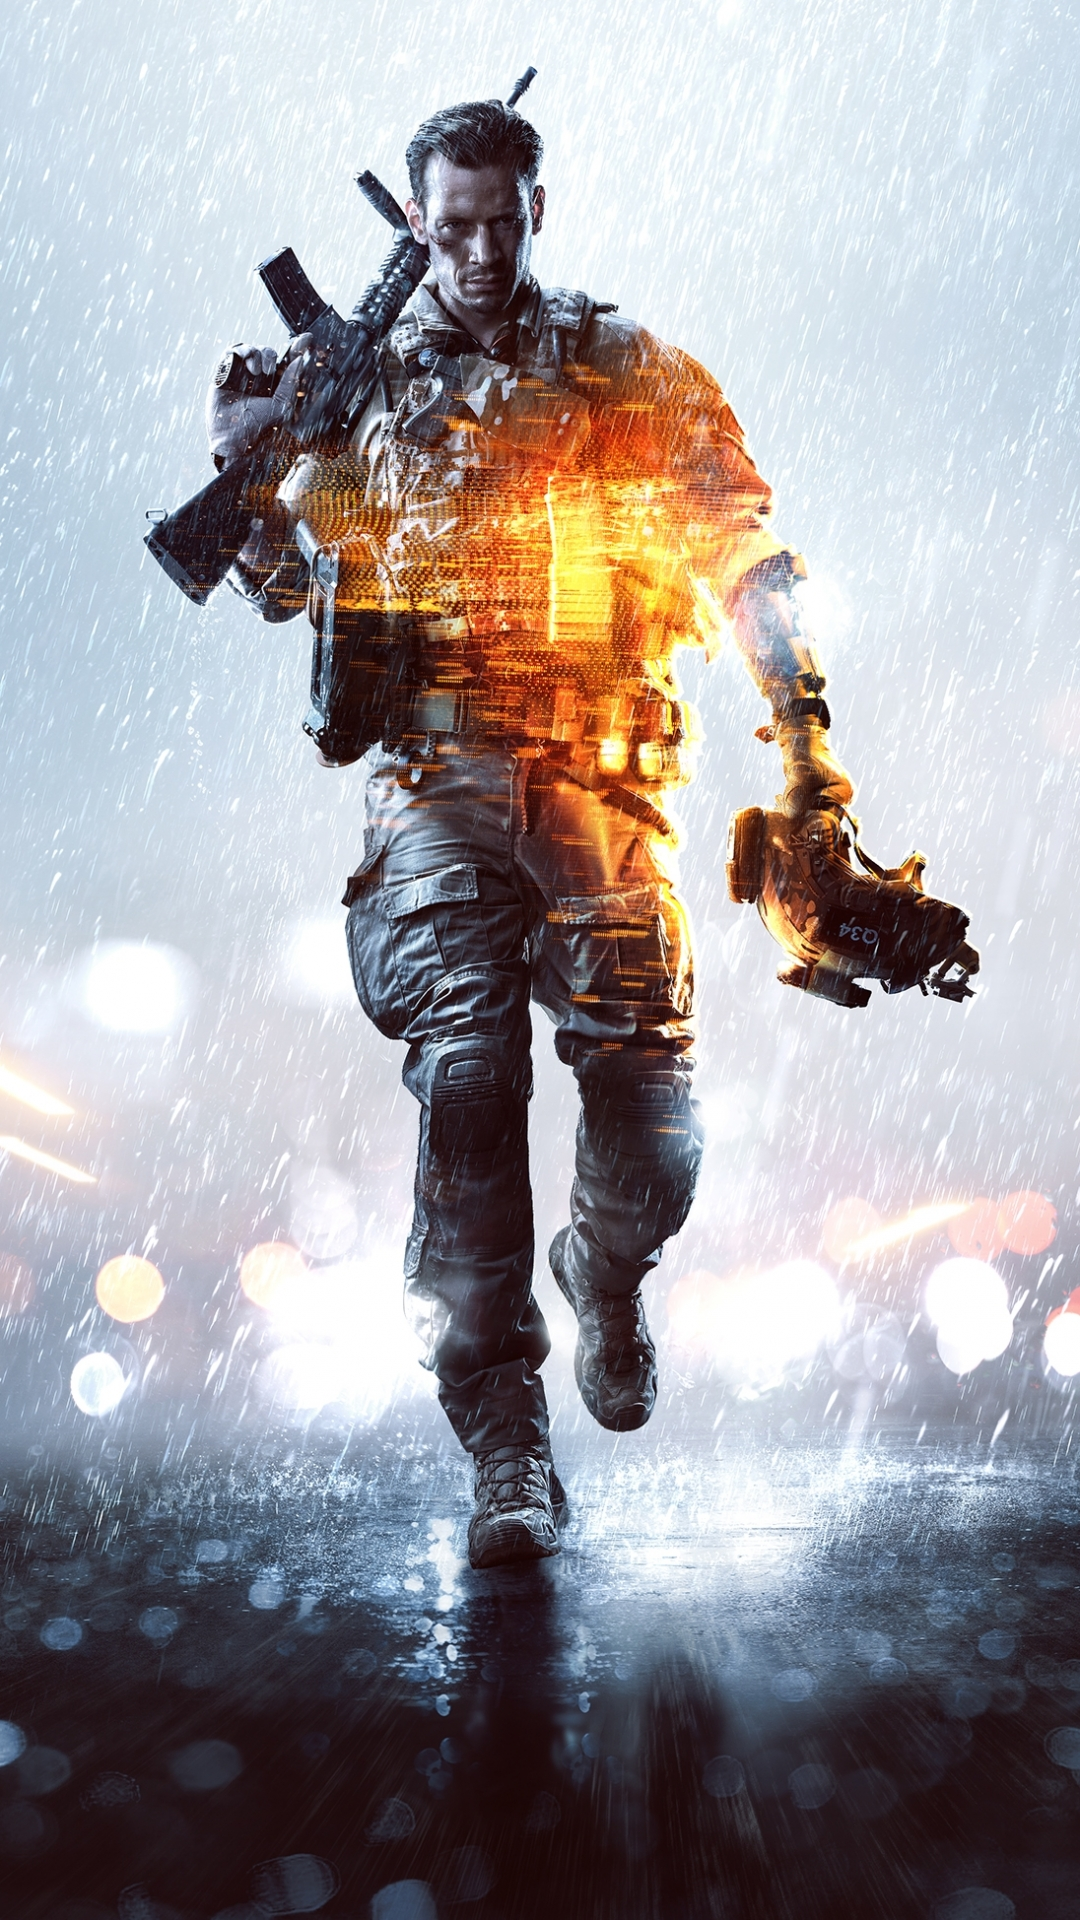 Video Game Battlefield 4 1080x1920 Wallpaper Id 39016 Mobile Abyss